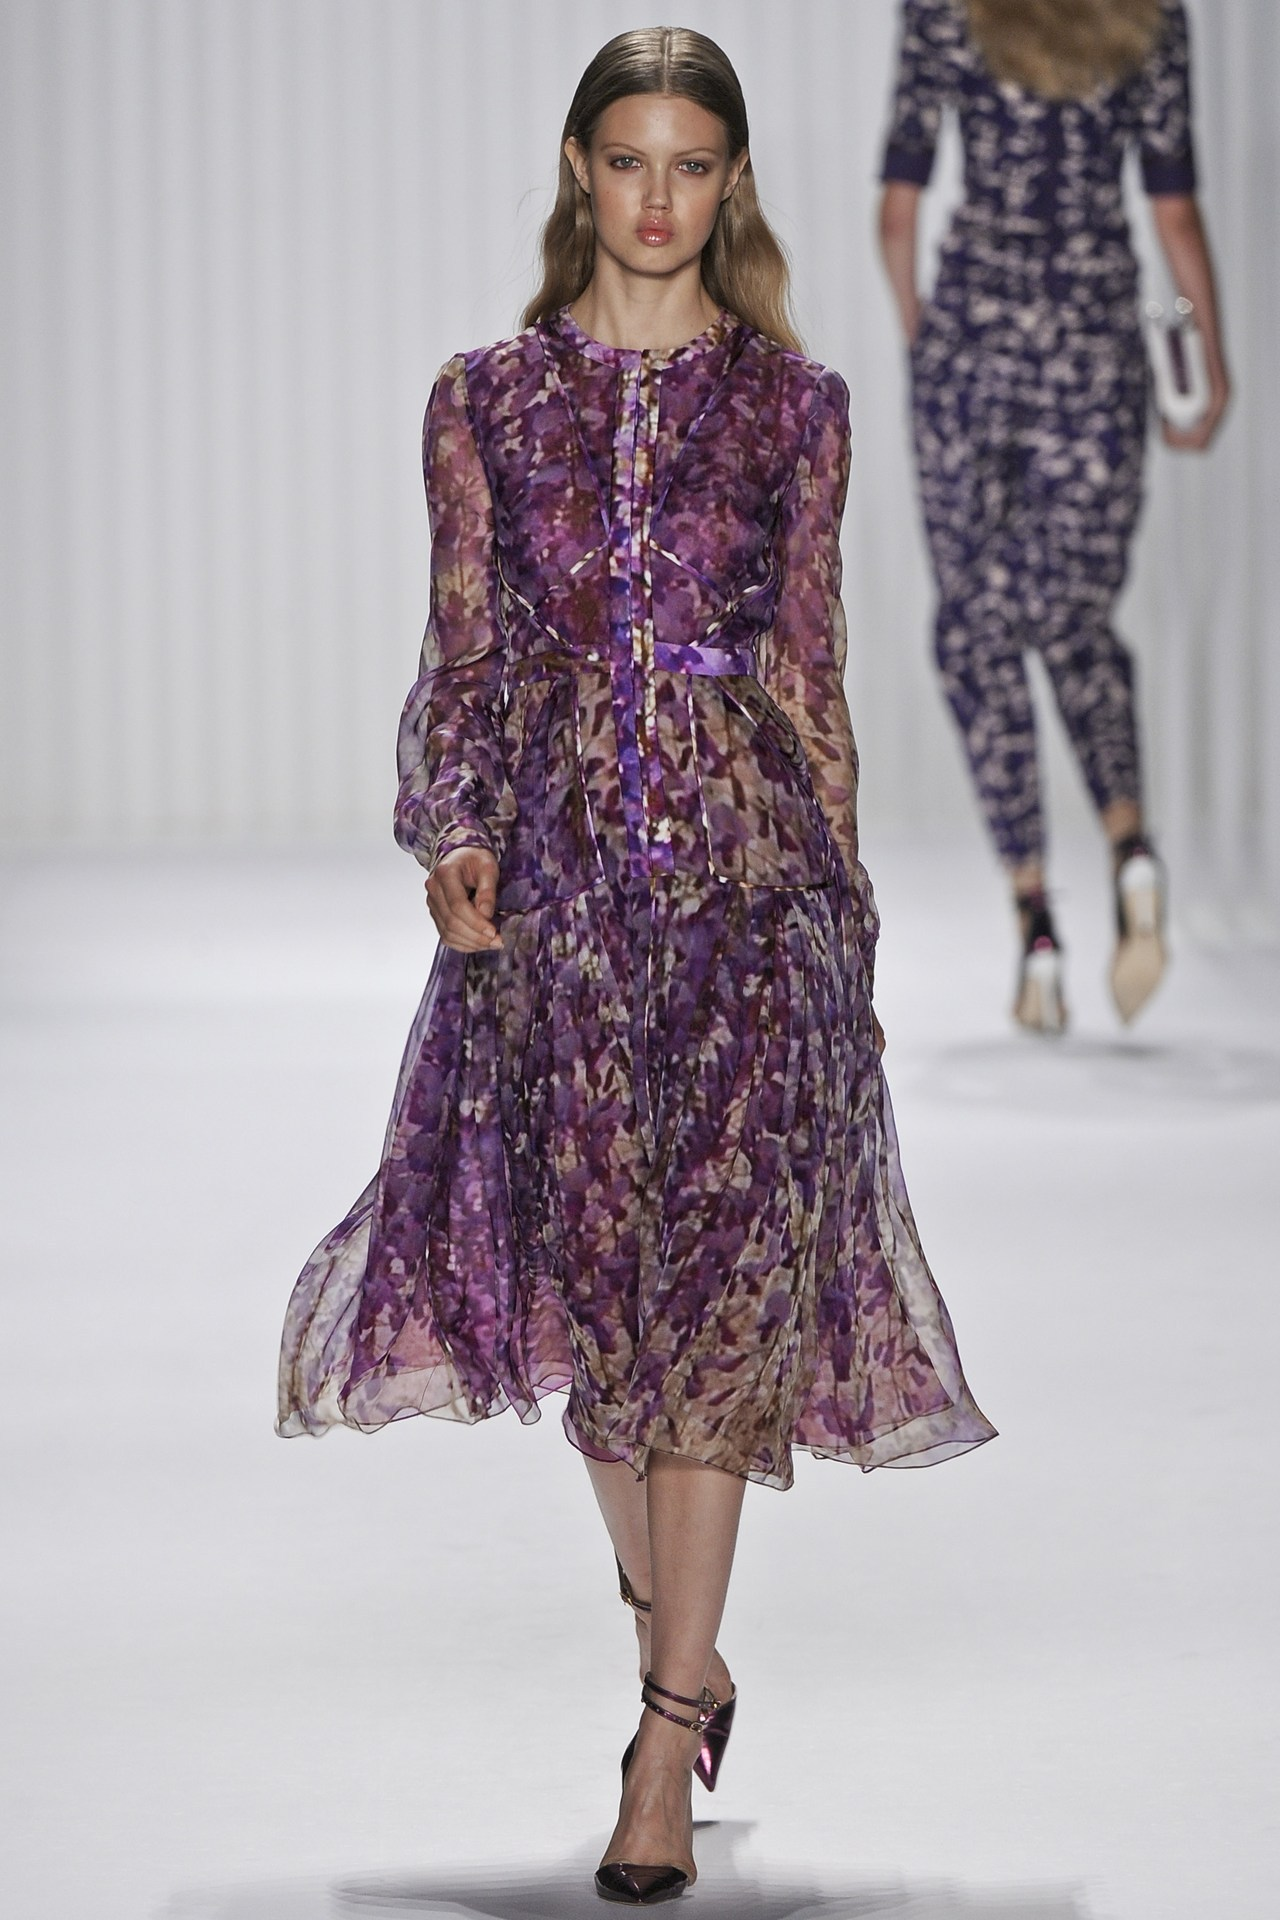 Lindsey Wixson at the J Mendel Spring/Summer 2013 show during NYFW, September 12th